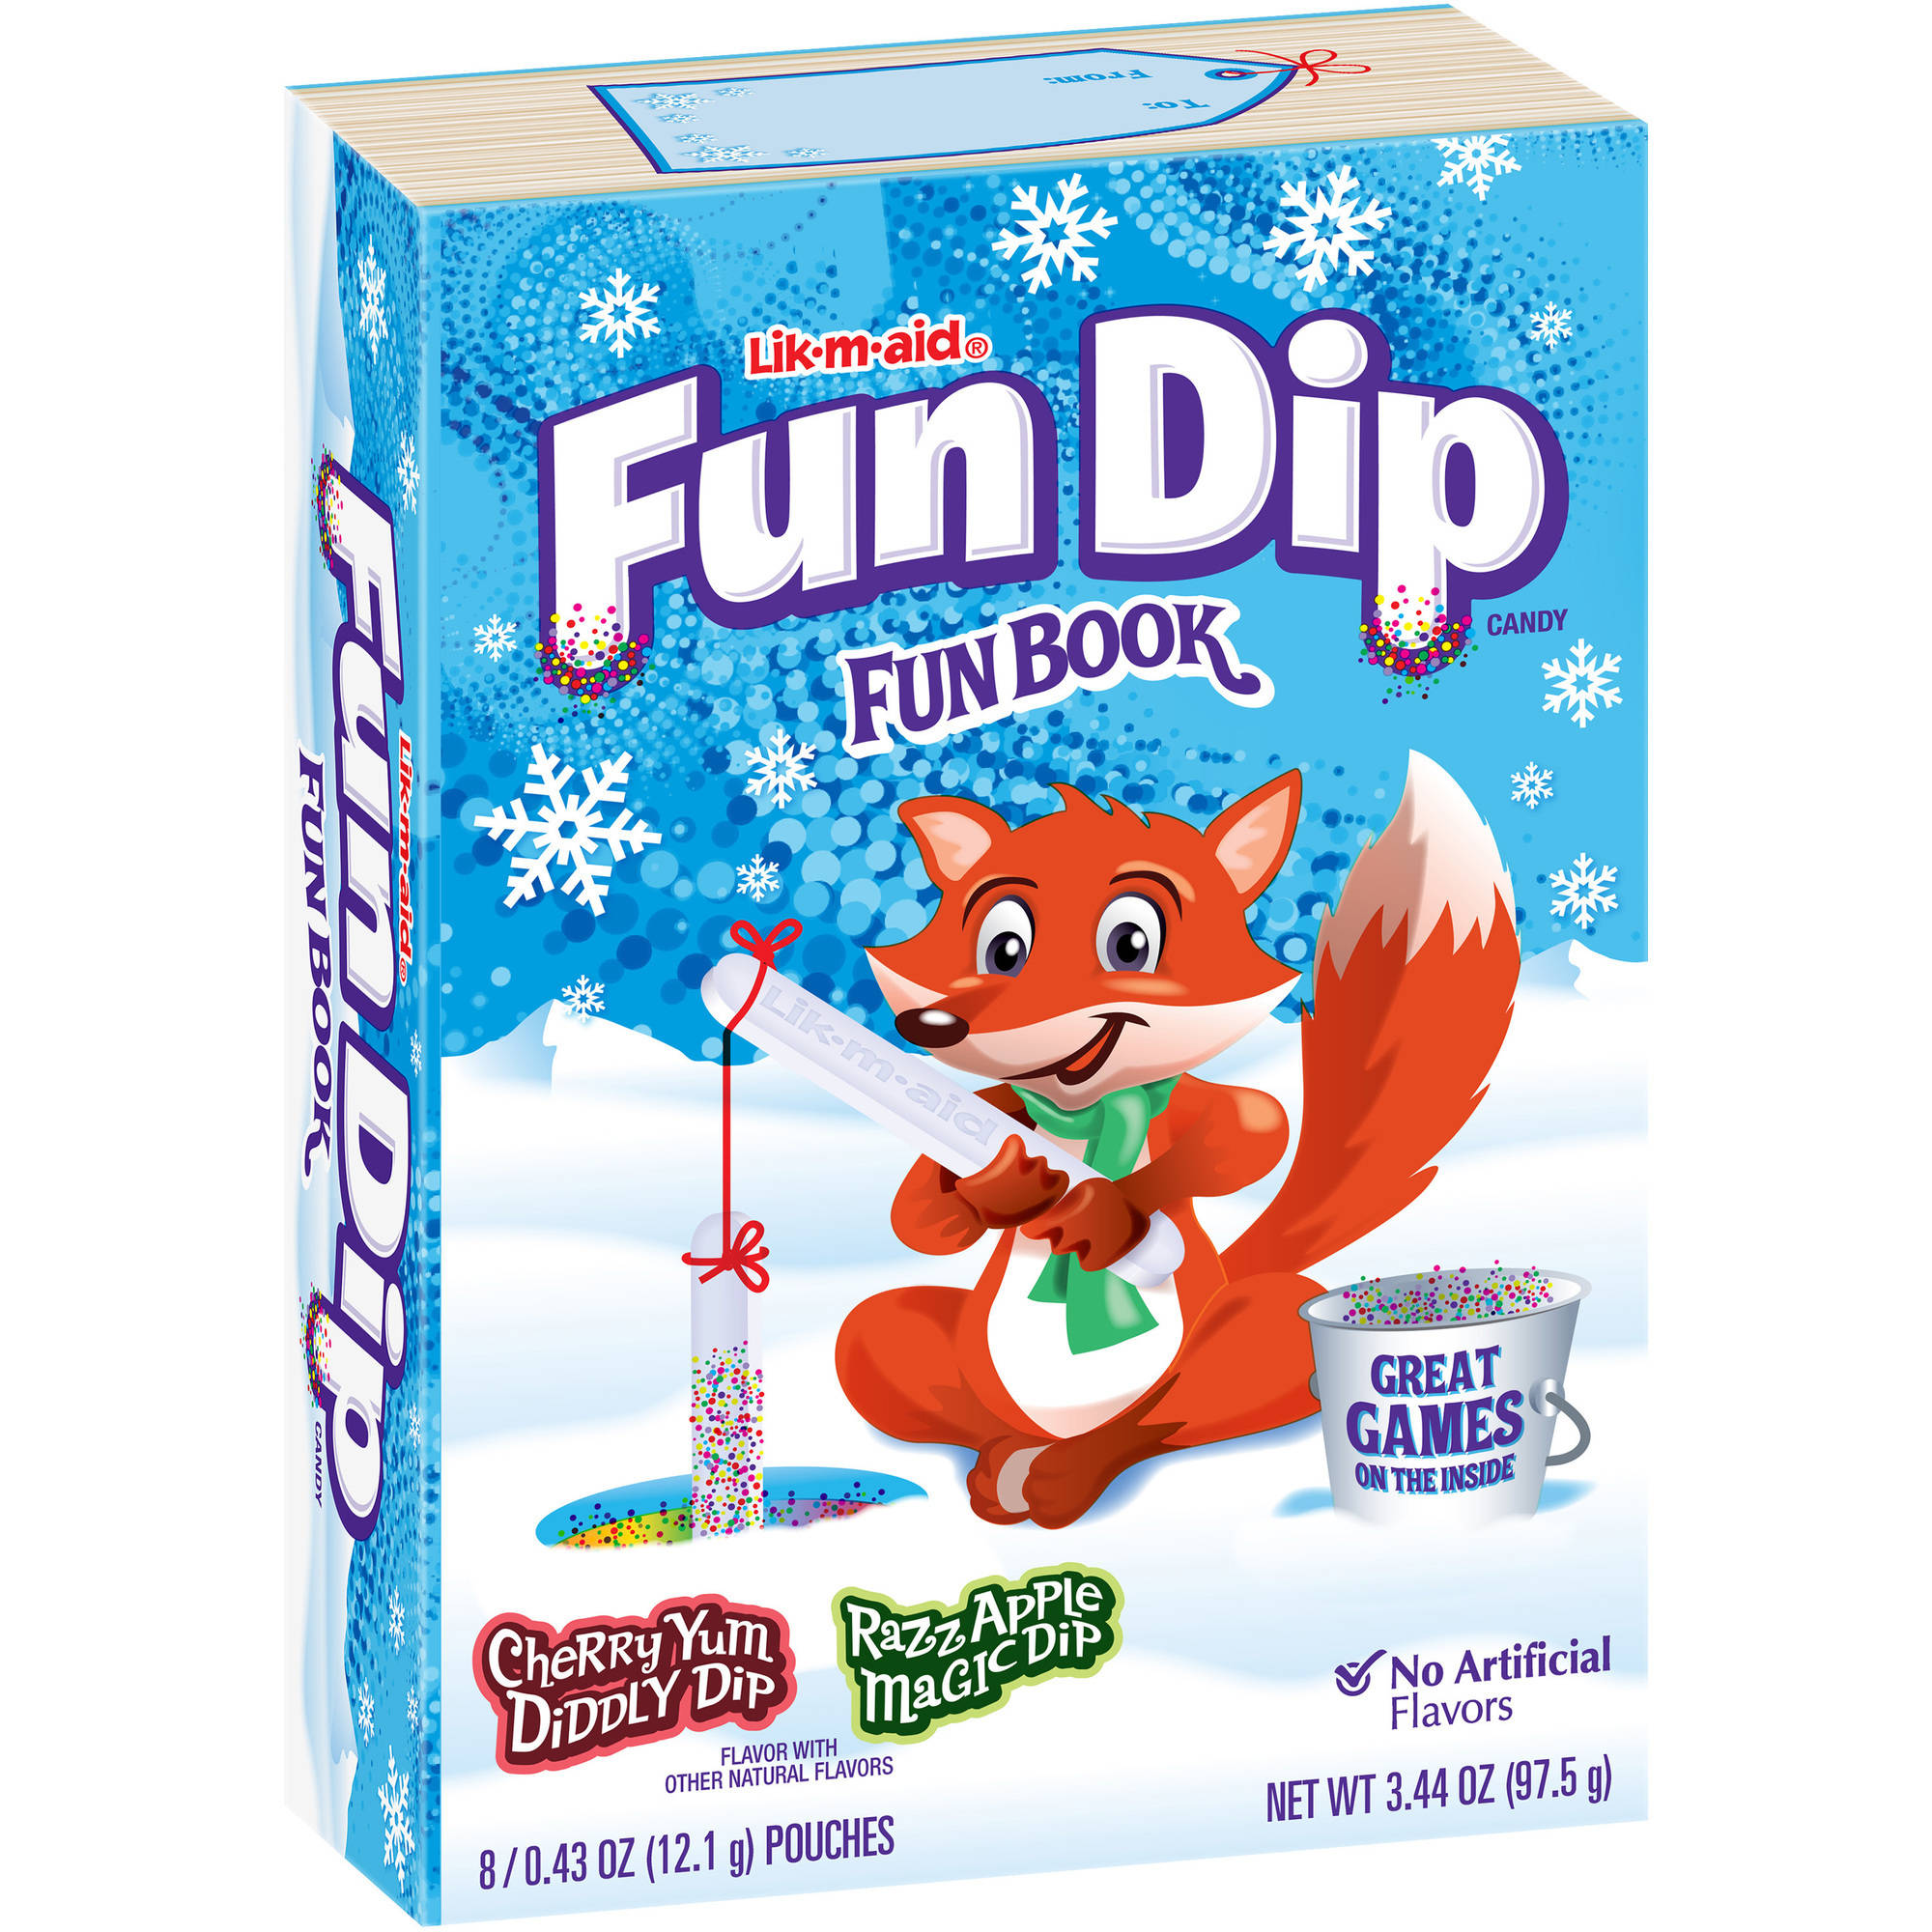 Wonka Fun Dip Holiday Fun Book with Candy Pouches